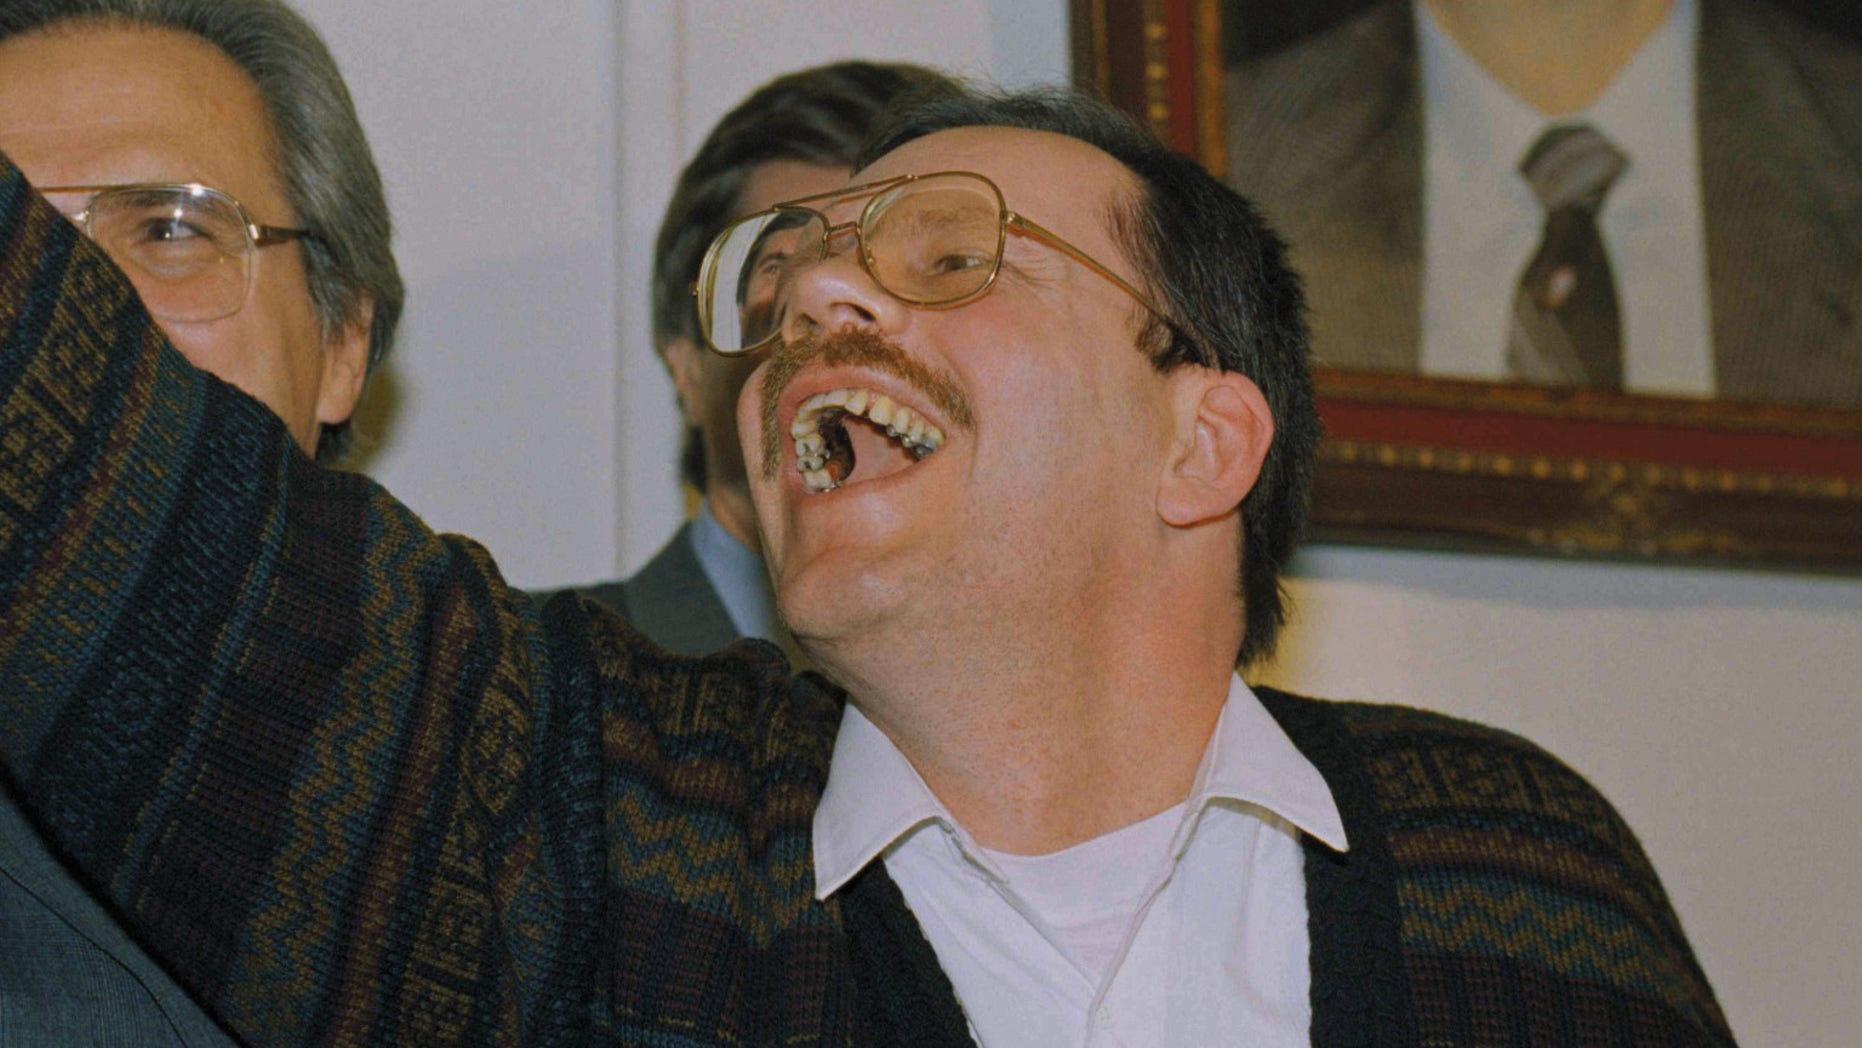 Terry Anderson, arch Middle East match for a Associated Press, waves as he enters a news discussion in a Syrian Foreign Ministry in Damascus, Wednesday, Dec. 4, 1991. Anderson was reason serf for scarcely 7 years before being expelled on Wednesday. (AP Photo/Santiago Lyon)